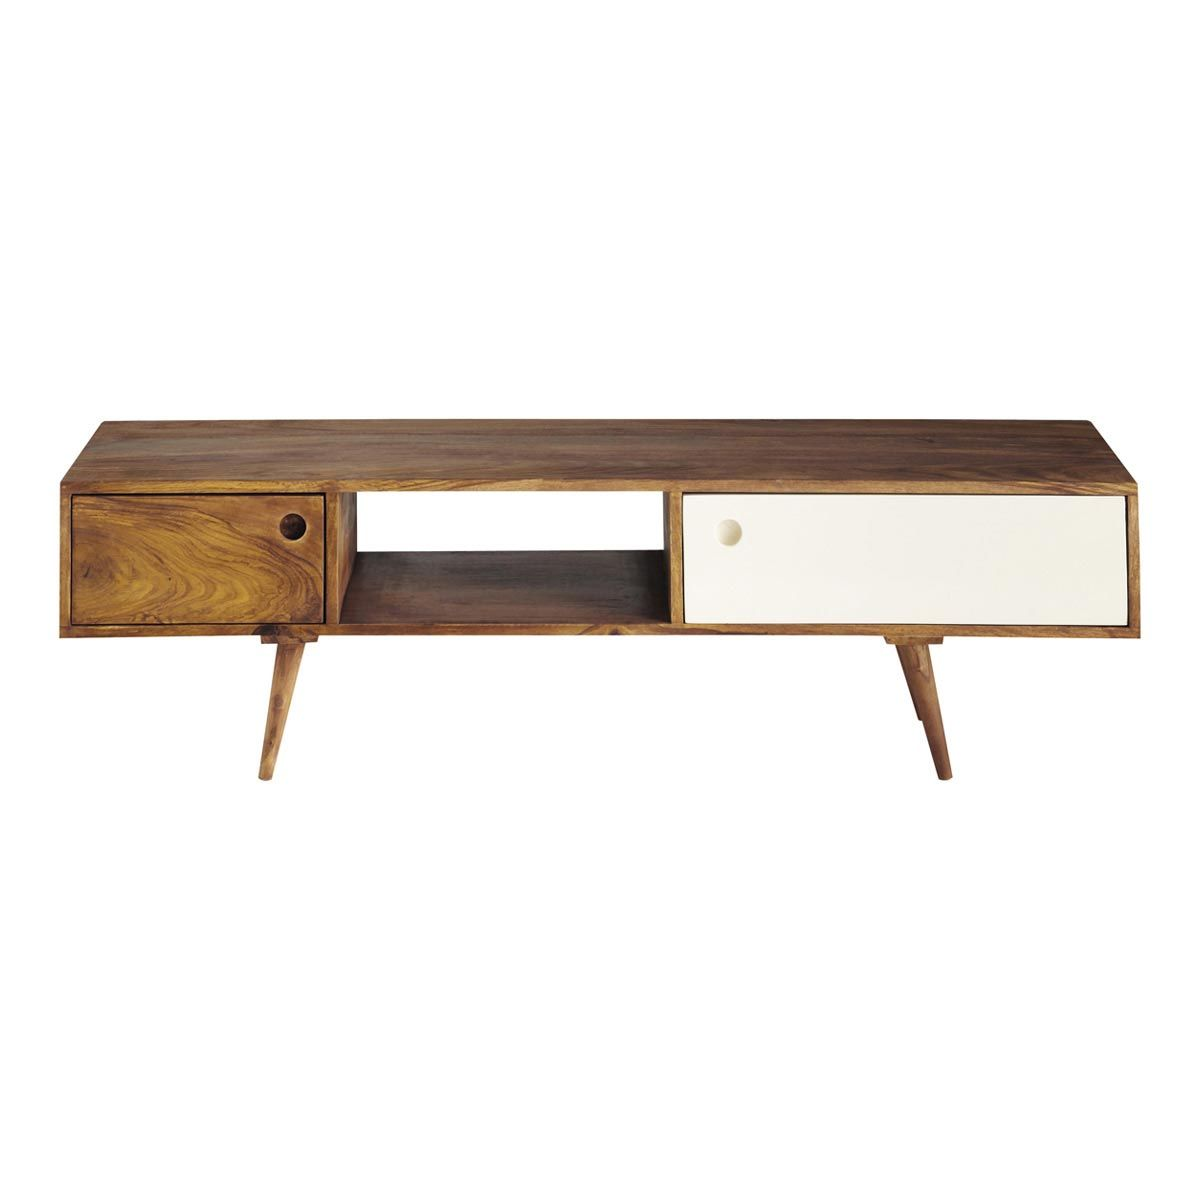 Meuble Tv Andersen - Sheeshamhouten Vintage Tv Meubel B140 Tv Unit Tv Stands And Tv [mjhdah]https://s-media-cache-ak0.pinimg.com/originals/05/d7/5b/05d75b2fd7feffd31de8850e4c038ee8.jpg